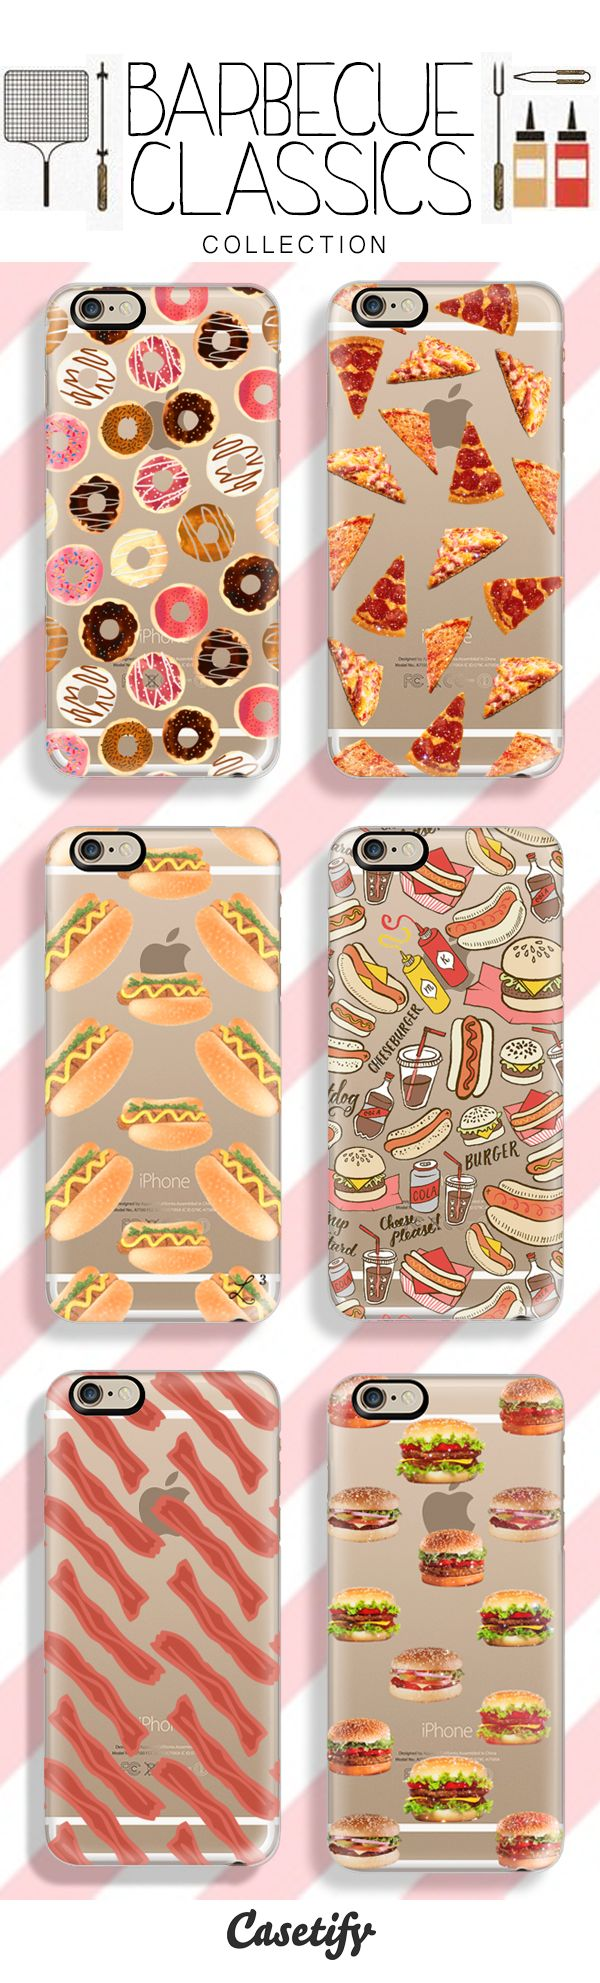 Planning a Summer Barbecue Party? You might just need these for your guests as well! Shop our Barbecue Themed Collection Here: http://www.casetify.com/artworks/EsCWhX3JxM